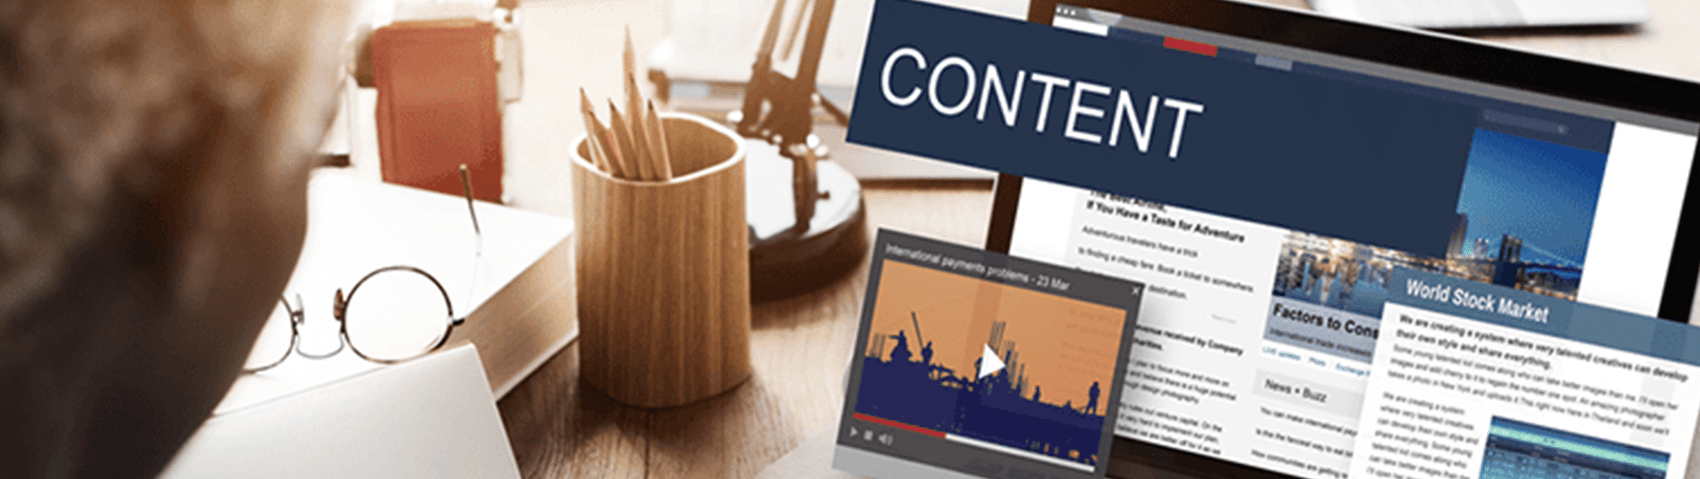 A step by step guide to Content development